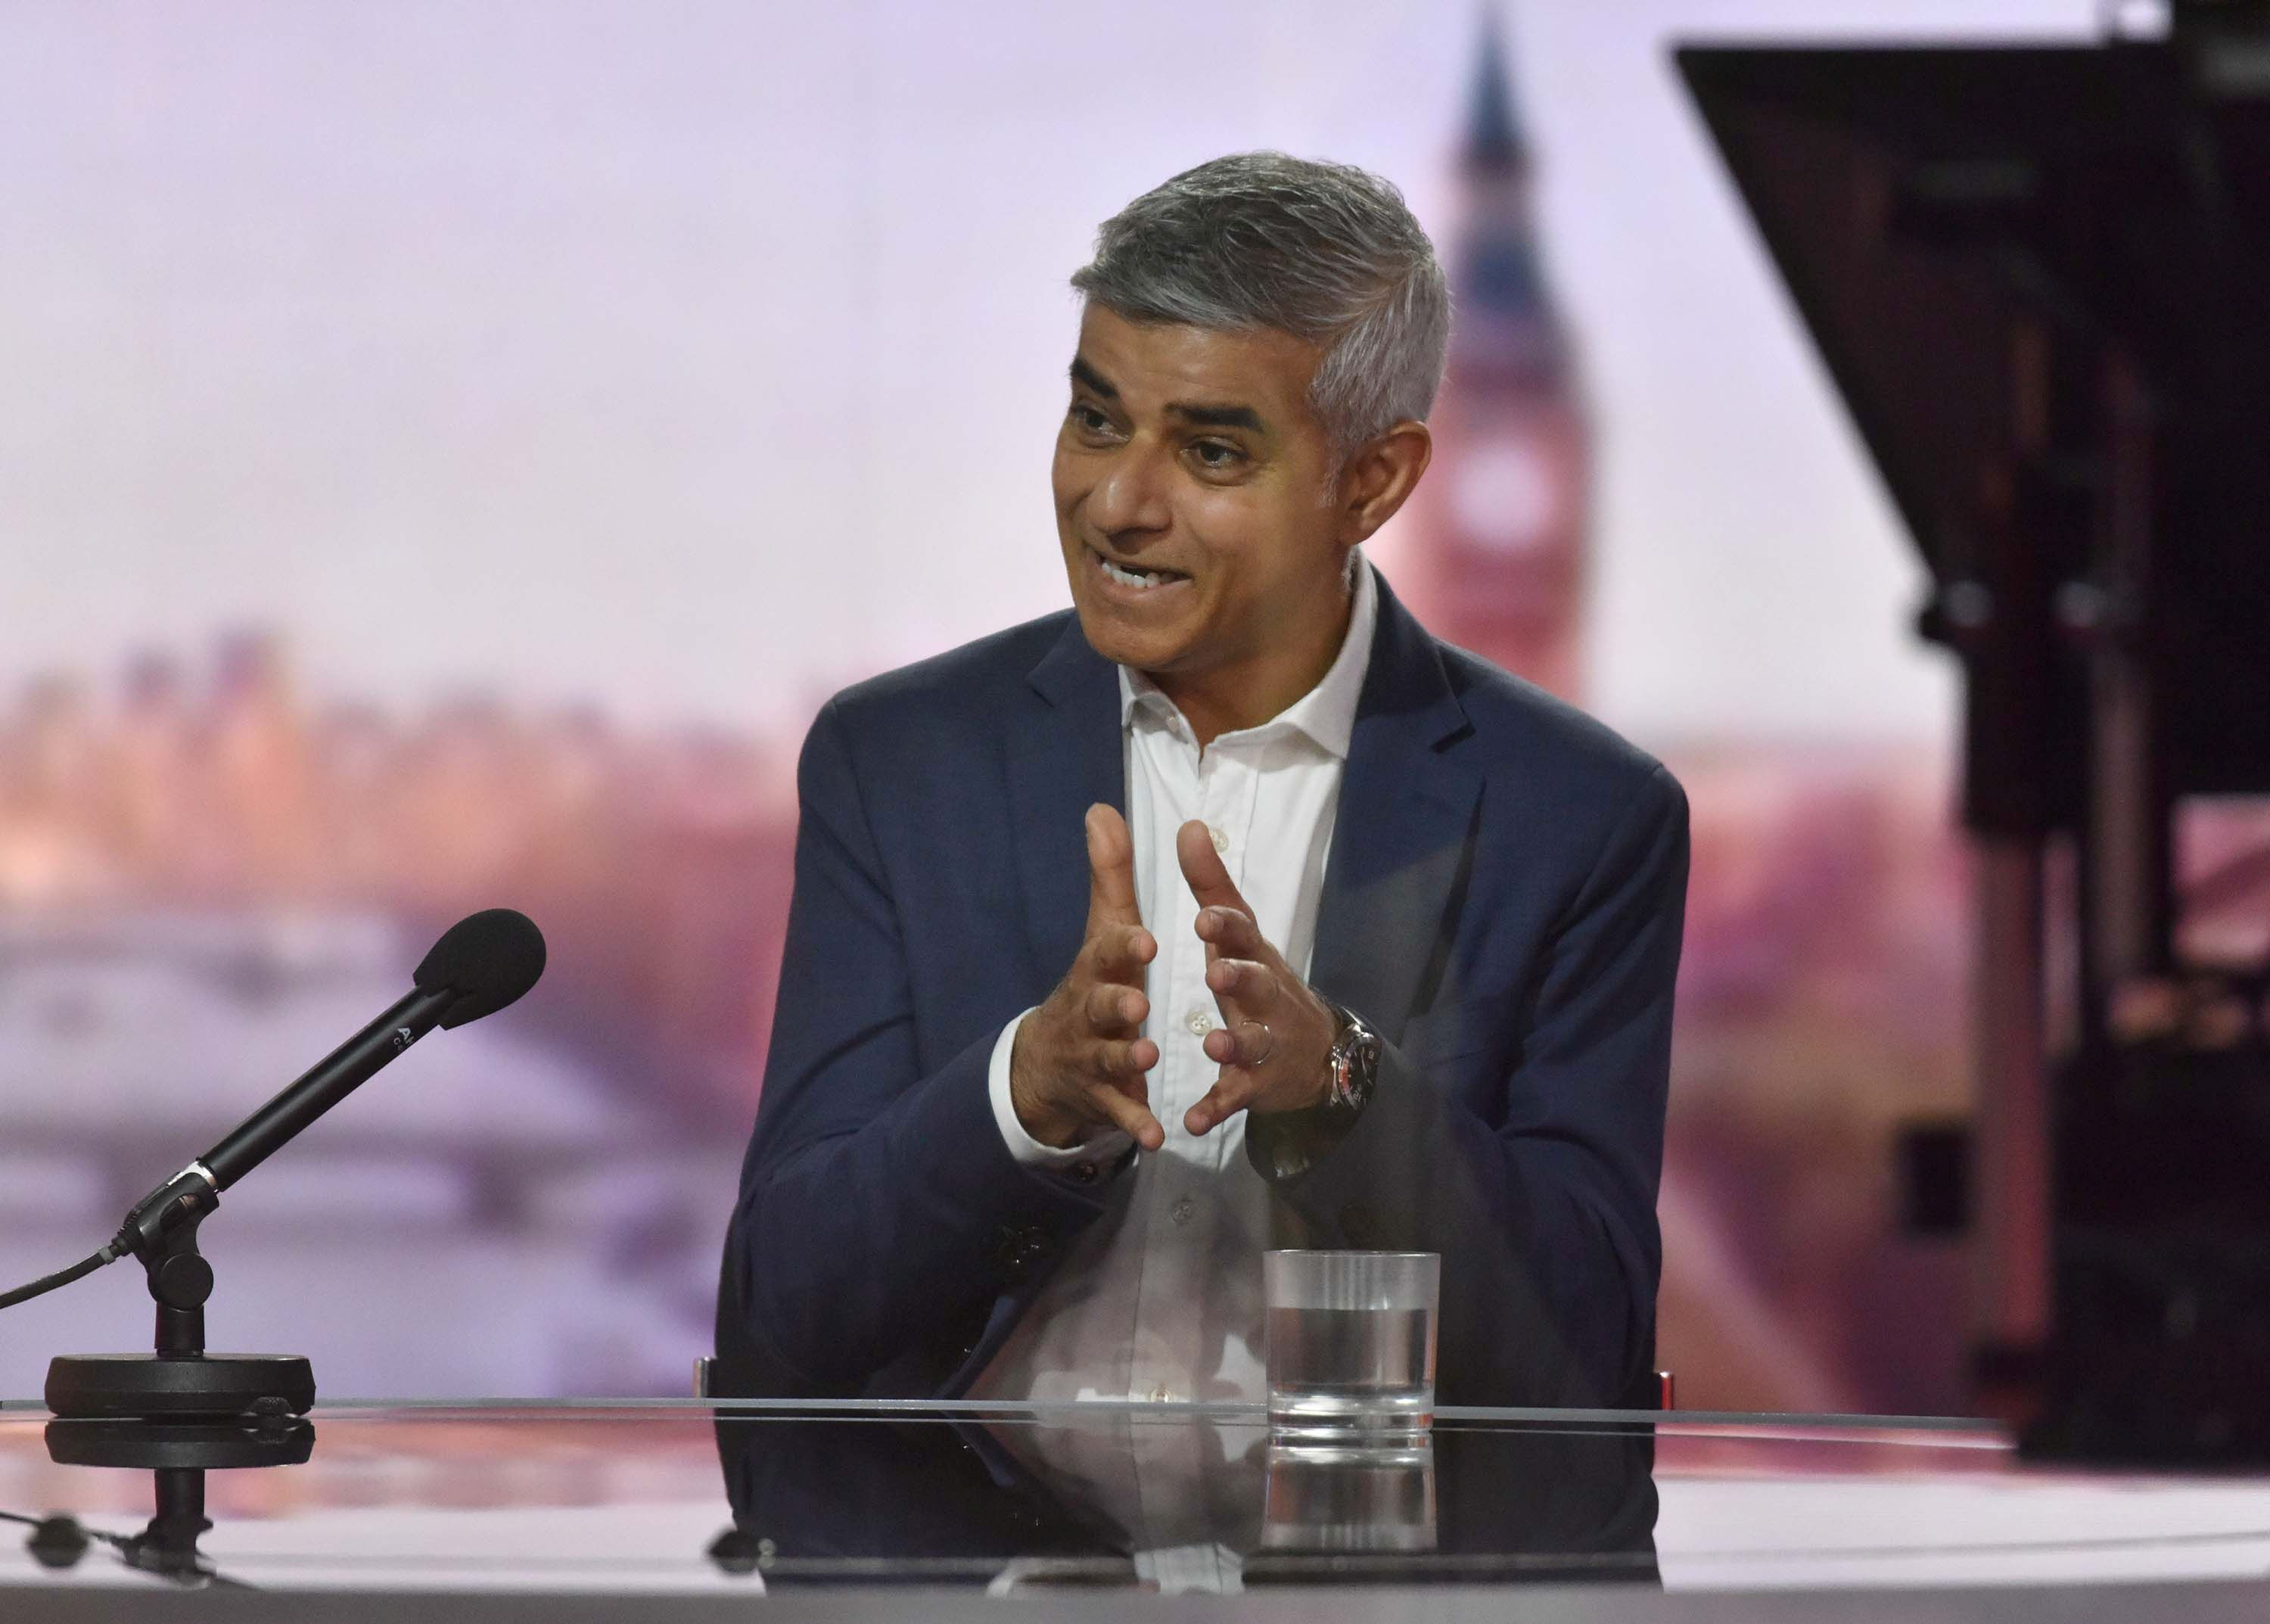 London's Mayor Sadiq Khan appears on the BBC TV's The Andrew Marr Show in London, Britain June 27, 2021. Jeff Overs/BBC/Handout via REUTERS ATTENTION EDITORS - THIS IMAGE HAS BEEN SUPPLIED BY A THIRD PARTY. NO RESALES. NO ARCHIVES. NO NEW USES AFTER 21 DAYS. MANDATORY CREDIT.